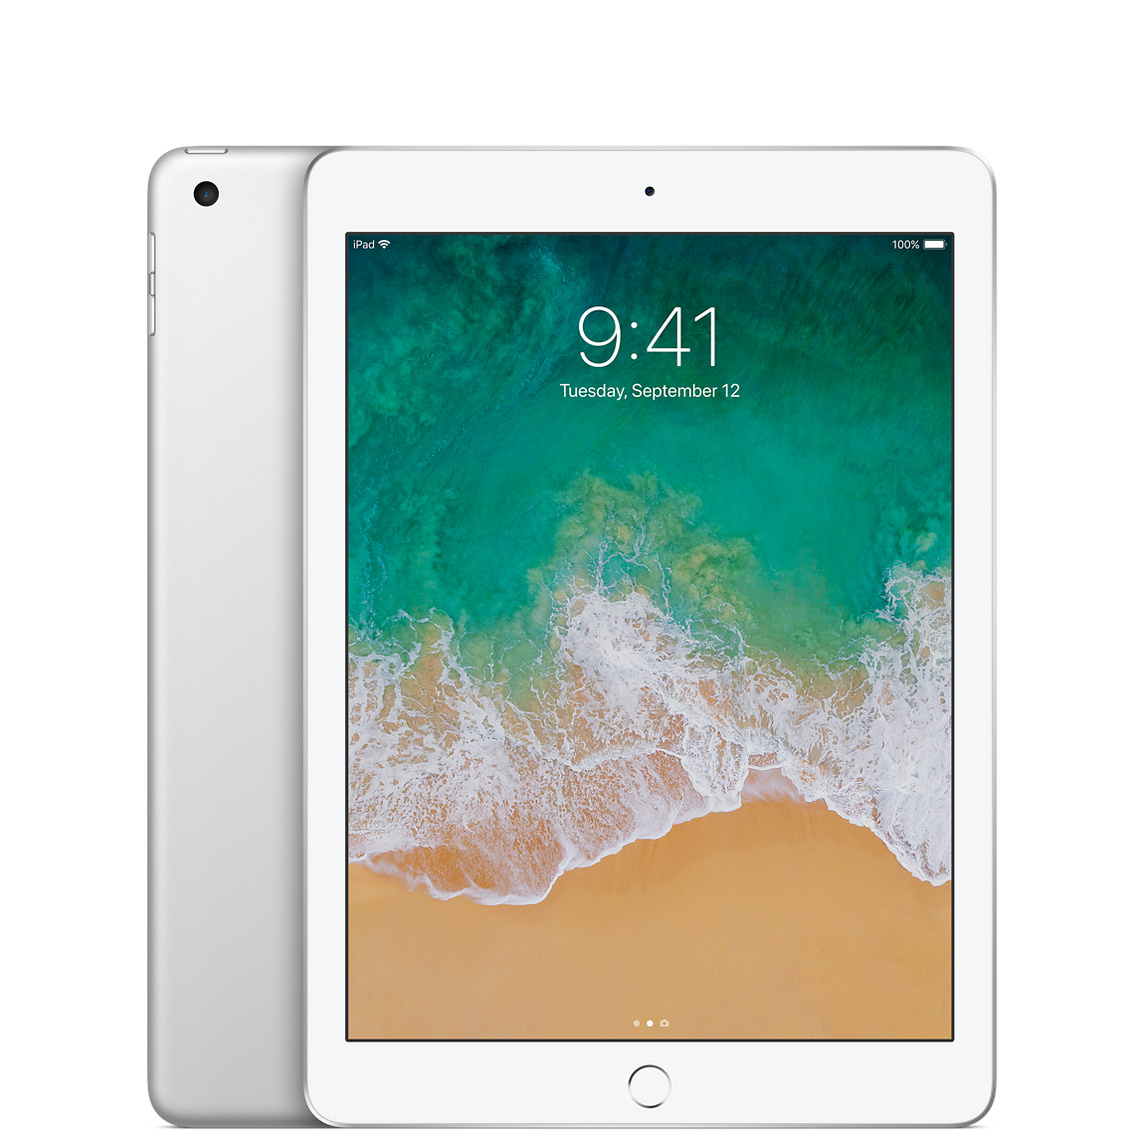 Refurbished iPad Wi-Fi 128GB - Silver (5th generation)